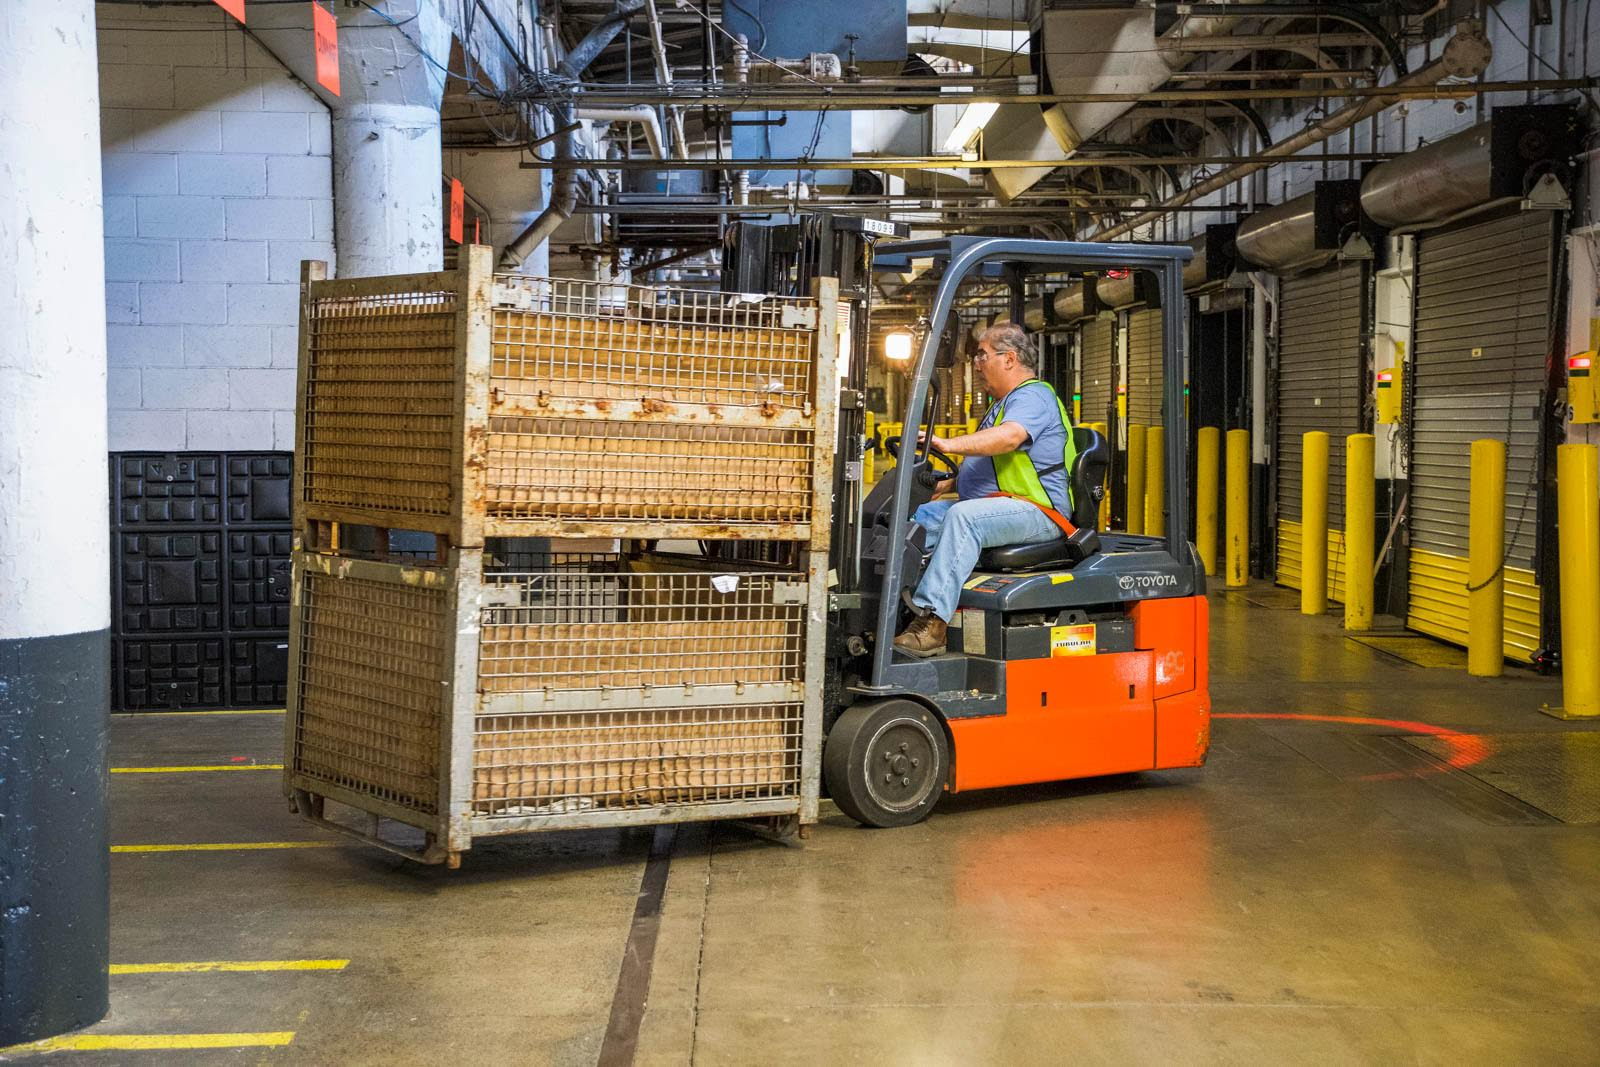 hollingsworth warehouse employee moving product with forkliftx